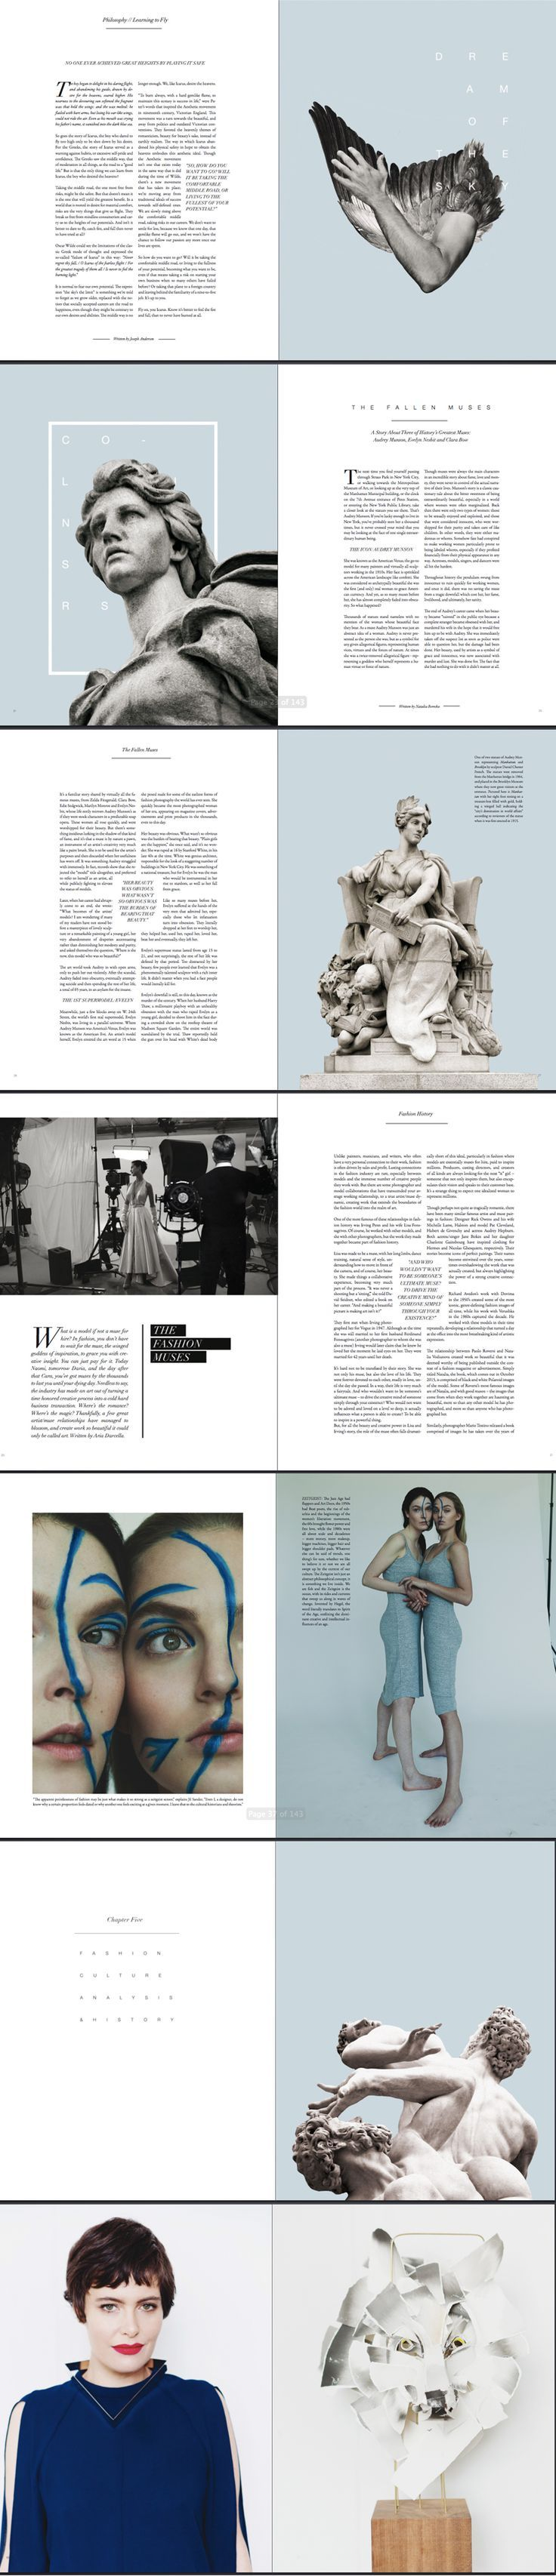 Lone Wolf Magazine, Volume 12 Layout Design | Graphic Design | Magazine Layout